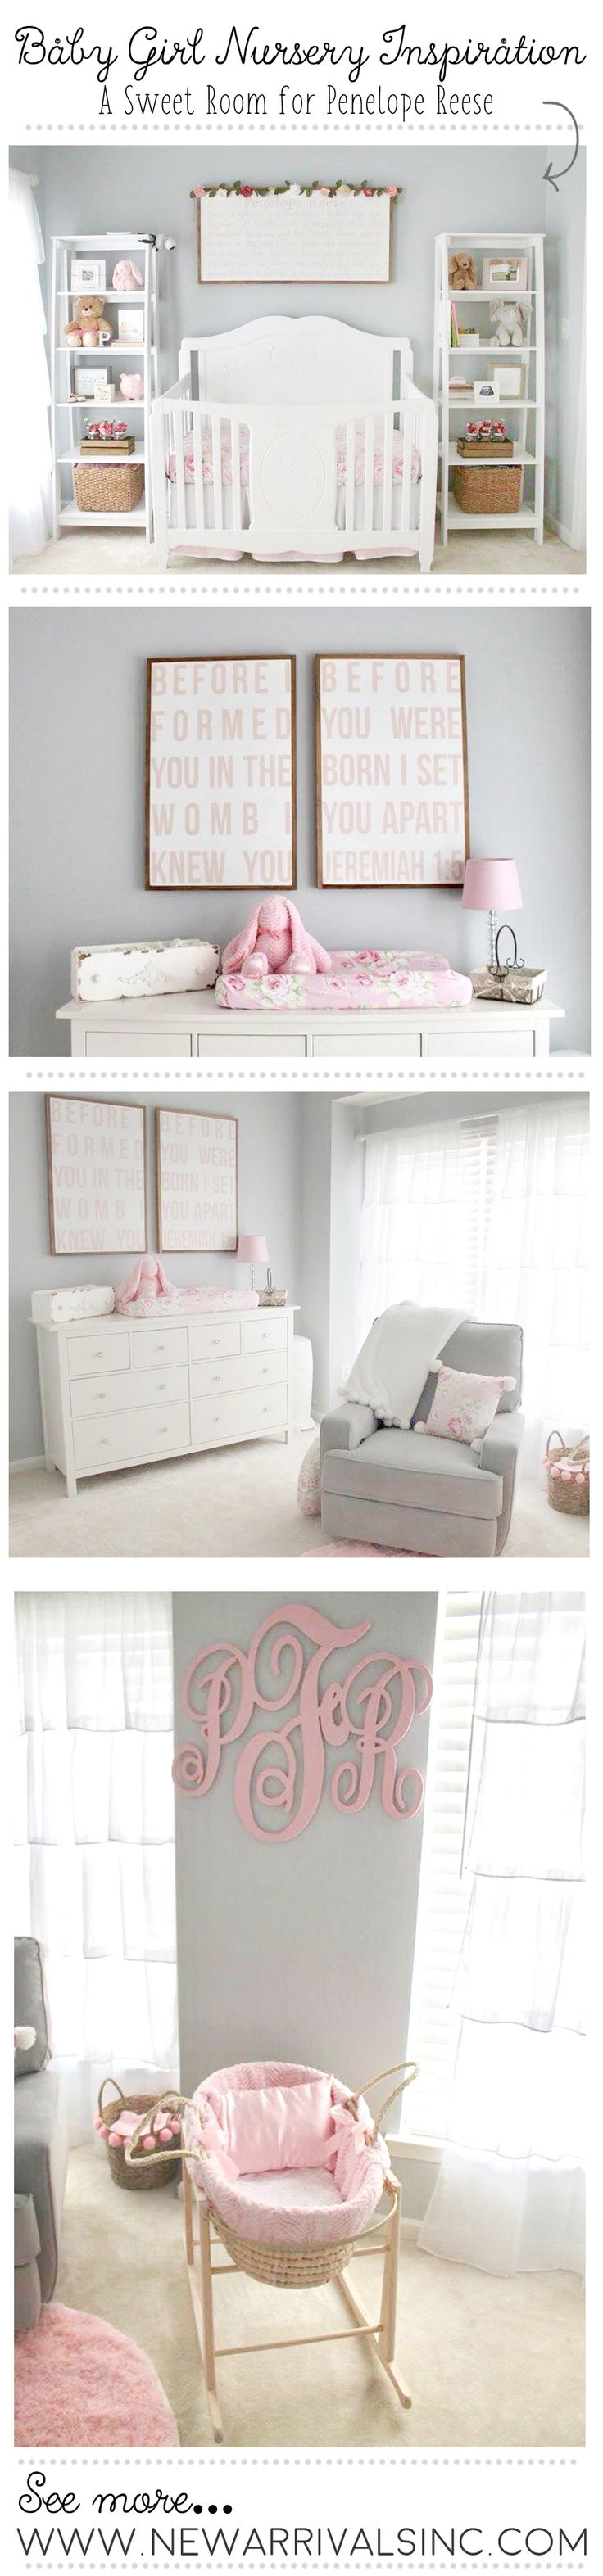 Baby Girl Nursery Inspiration | Floral Baby Bedding & Nursery